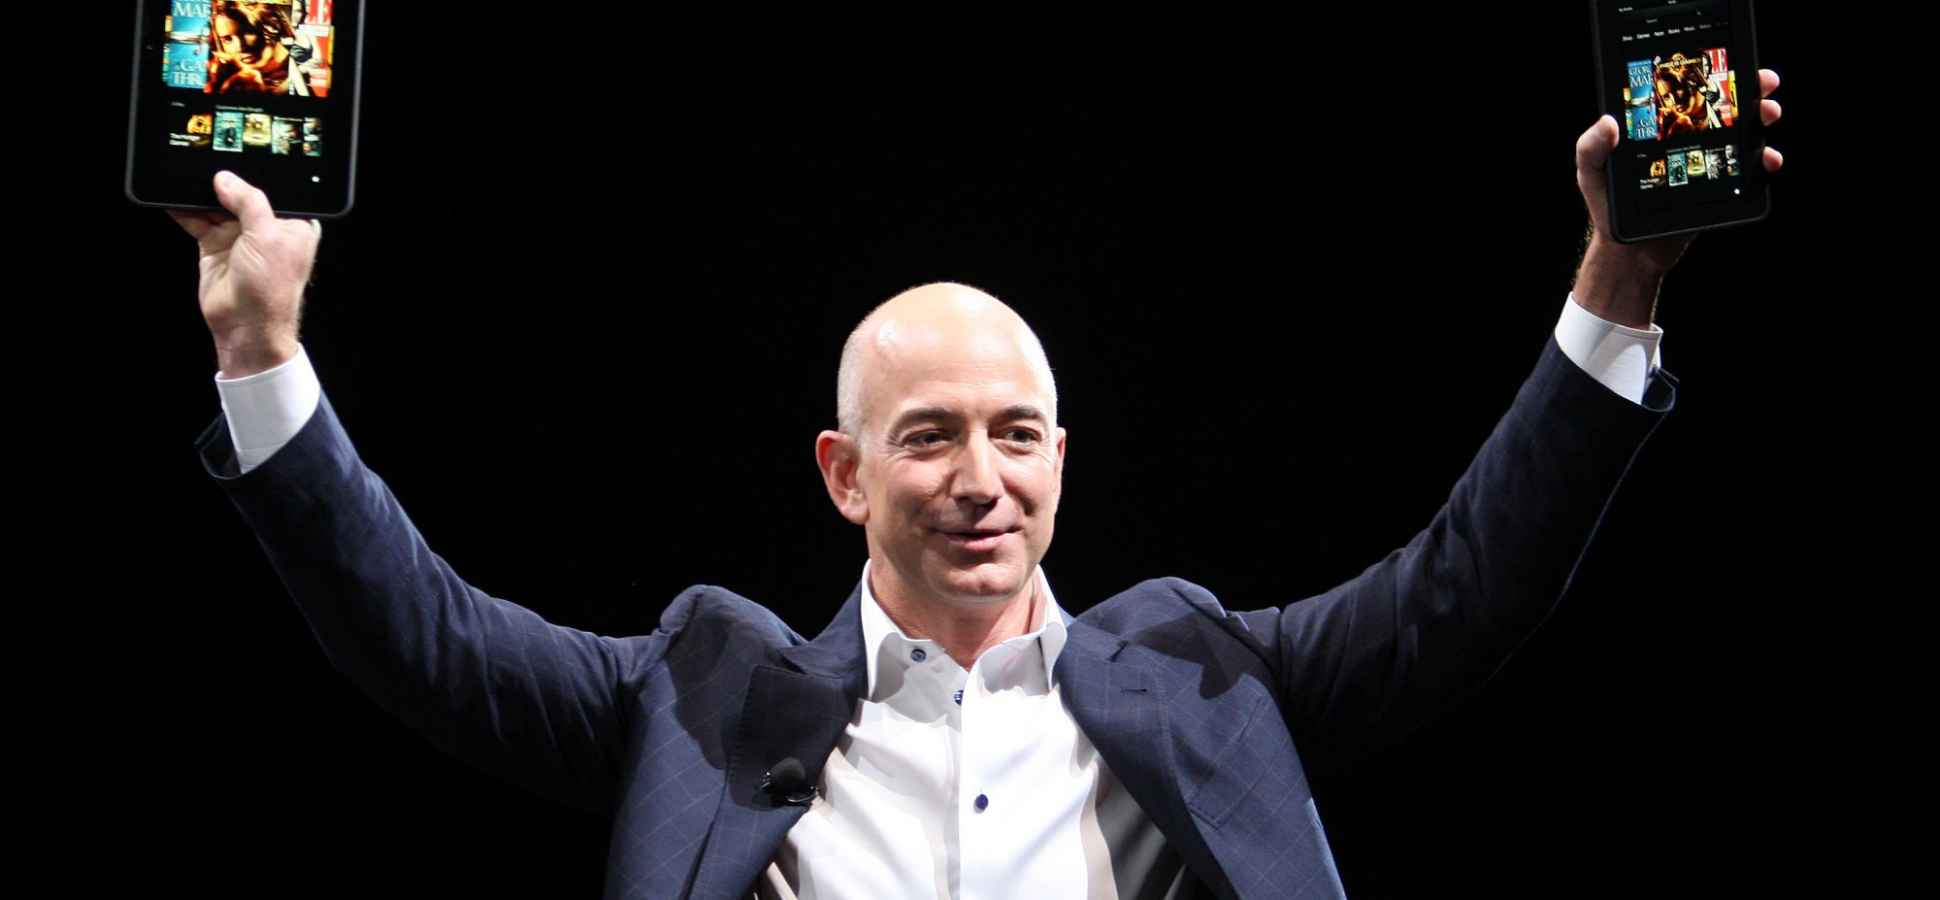 Jeff Bezos' Top 3 Business Moves